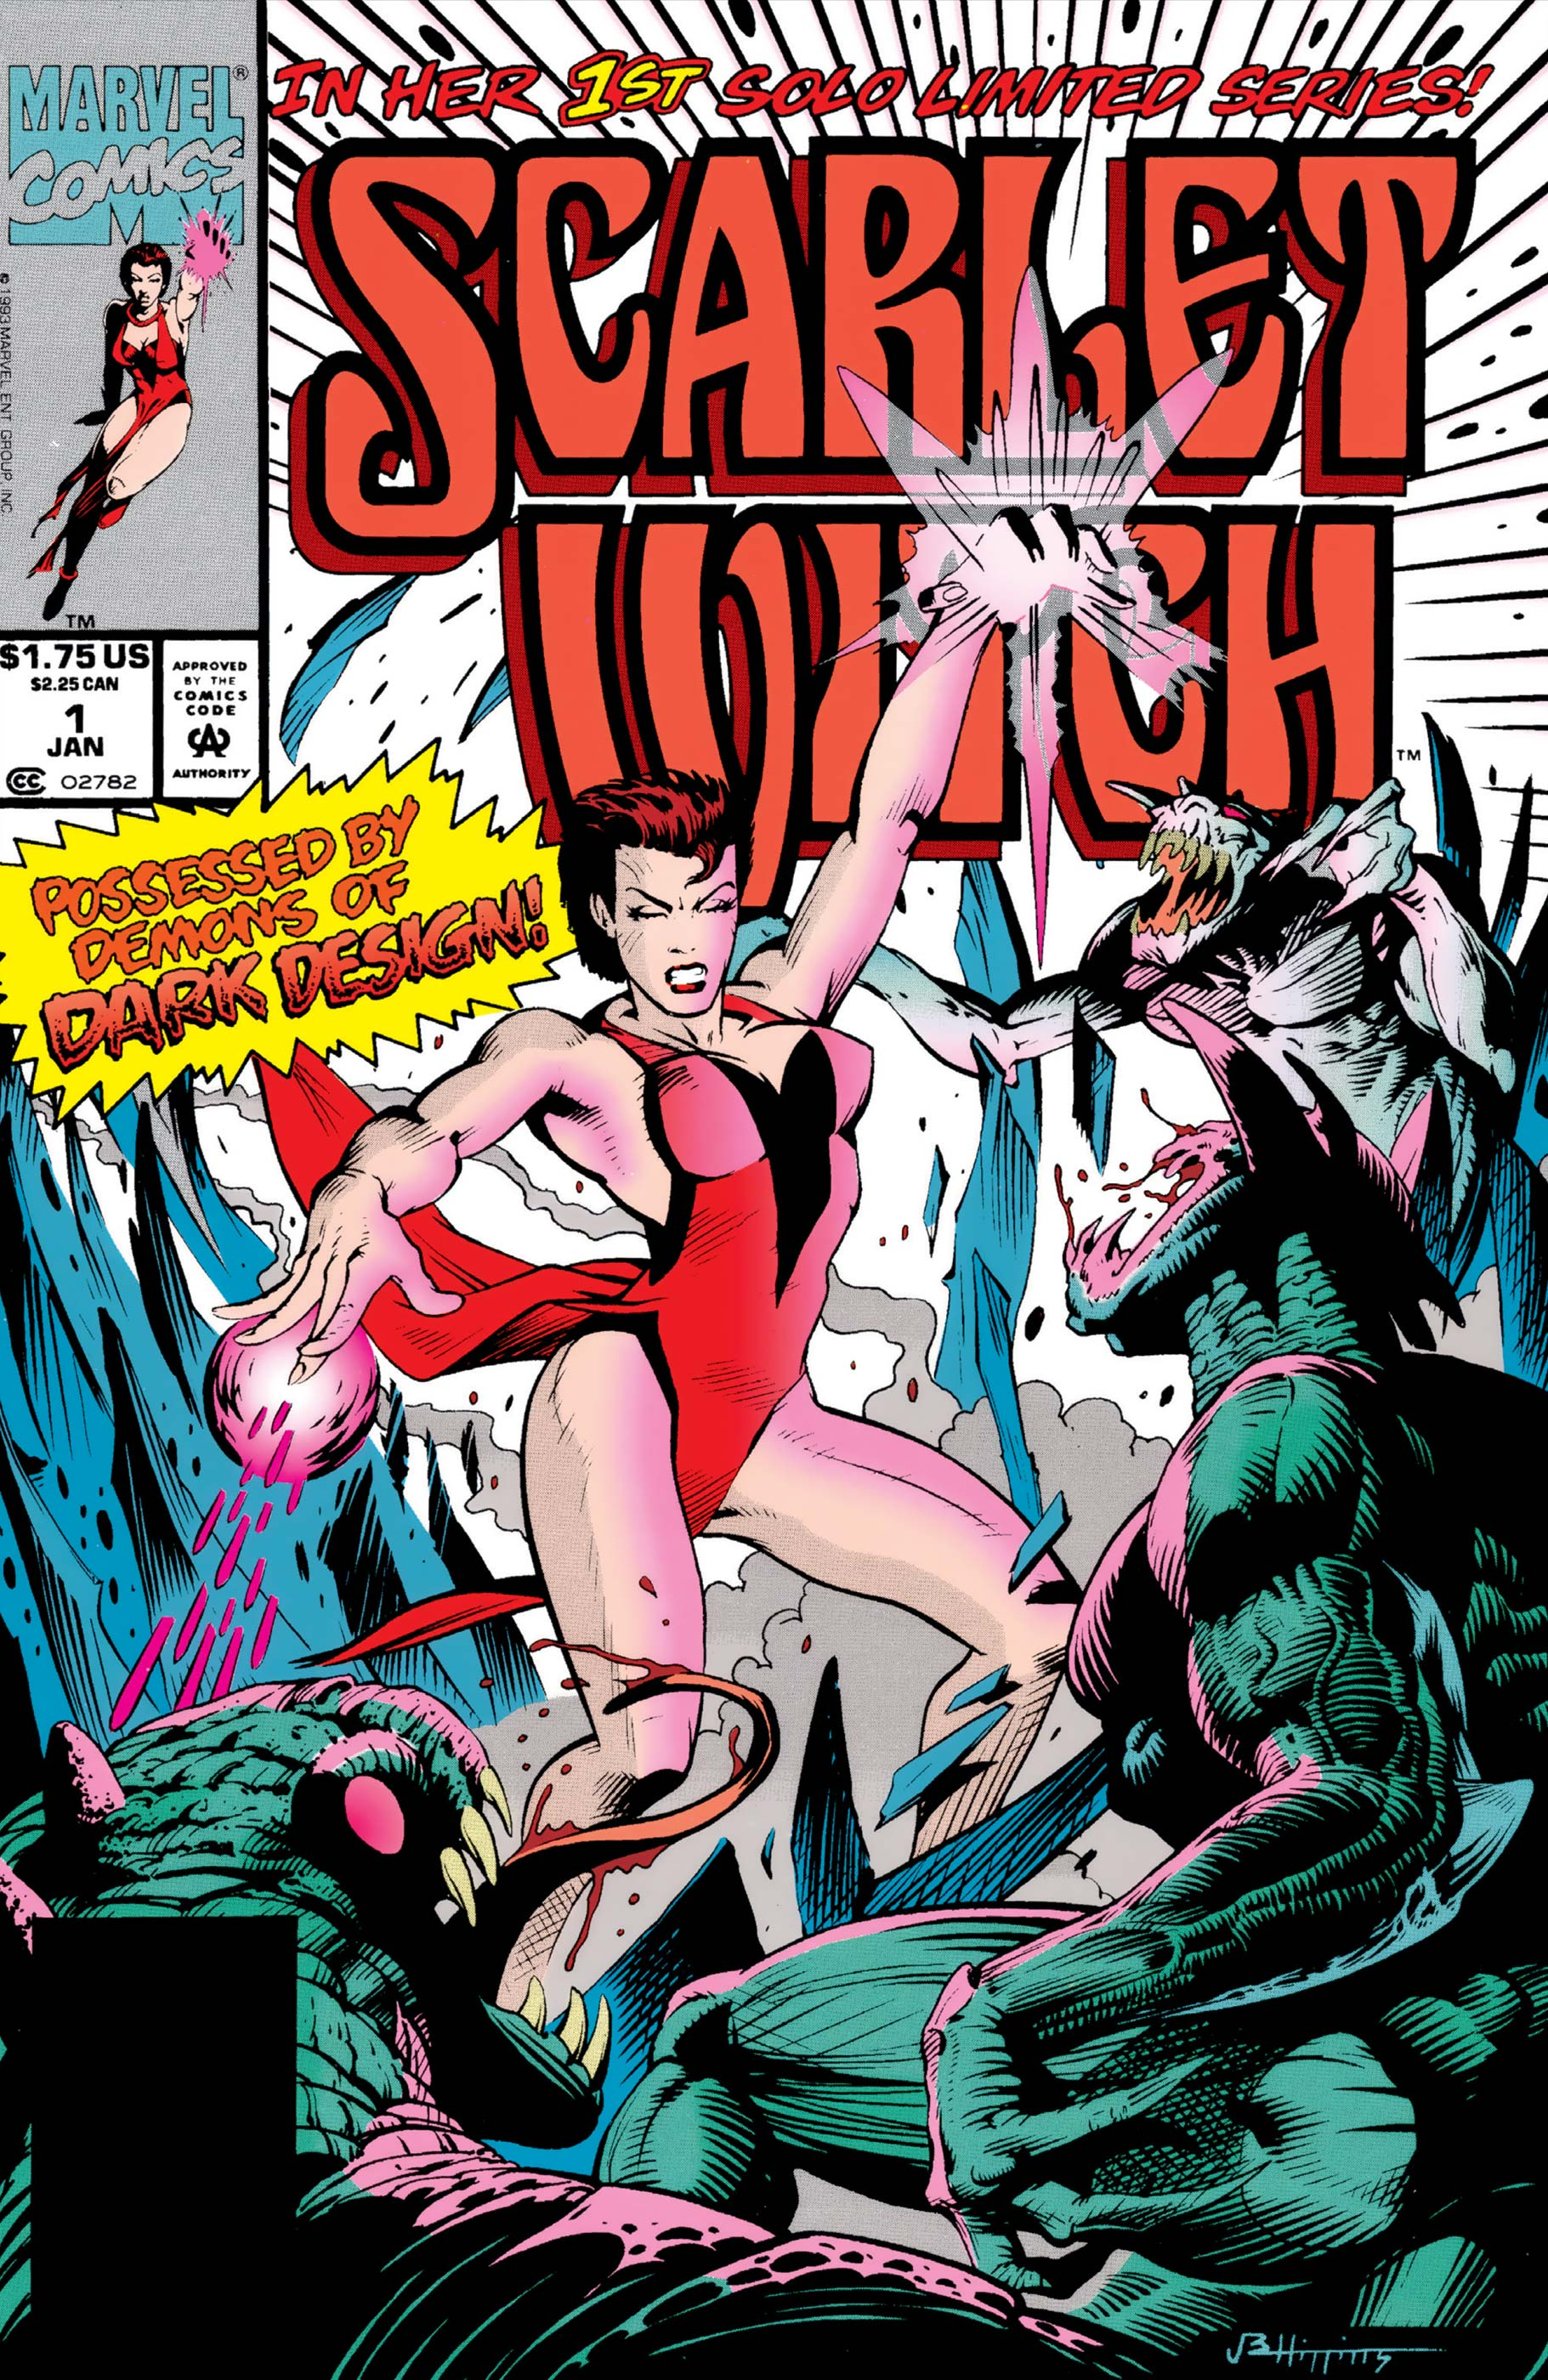 Scarlet Witch (1994) #1